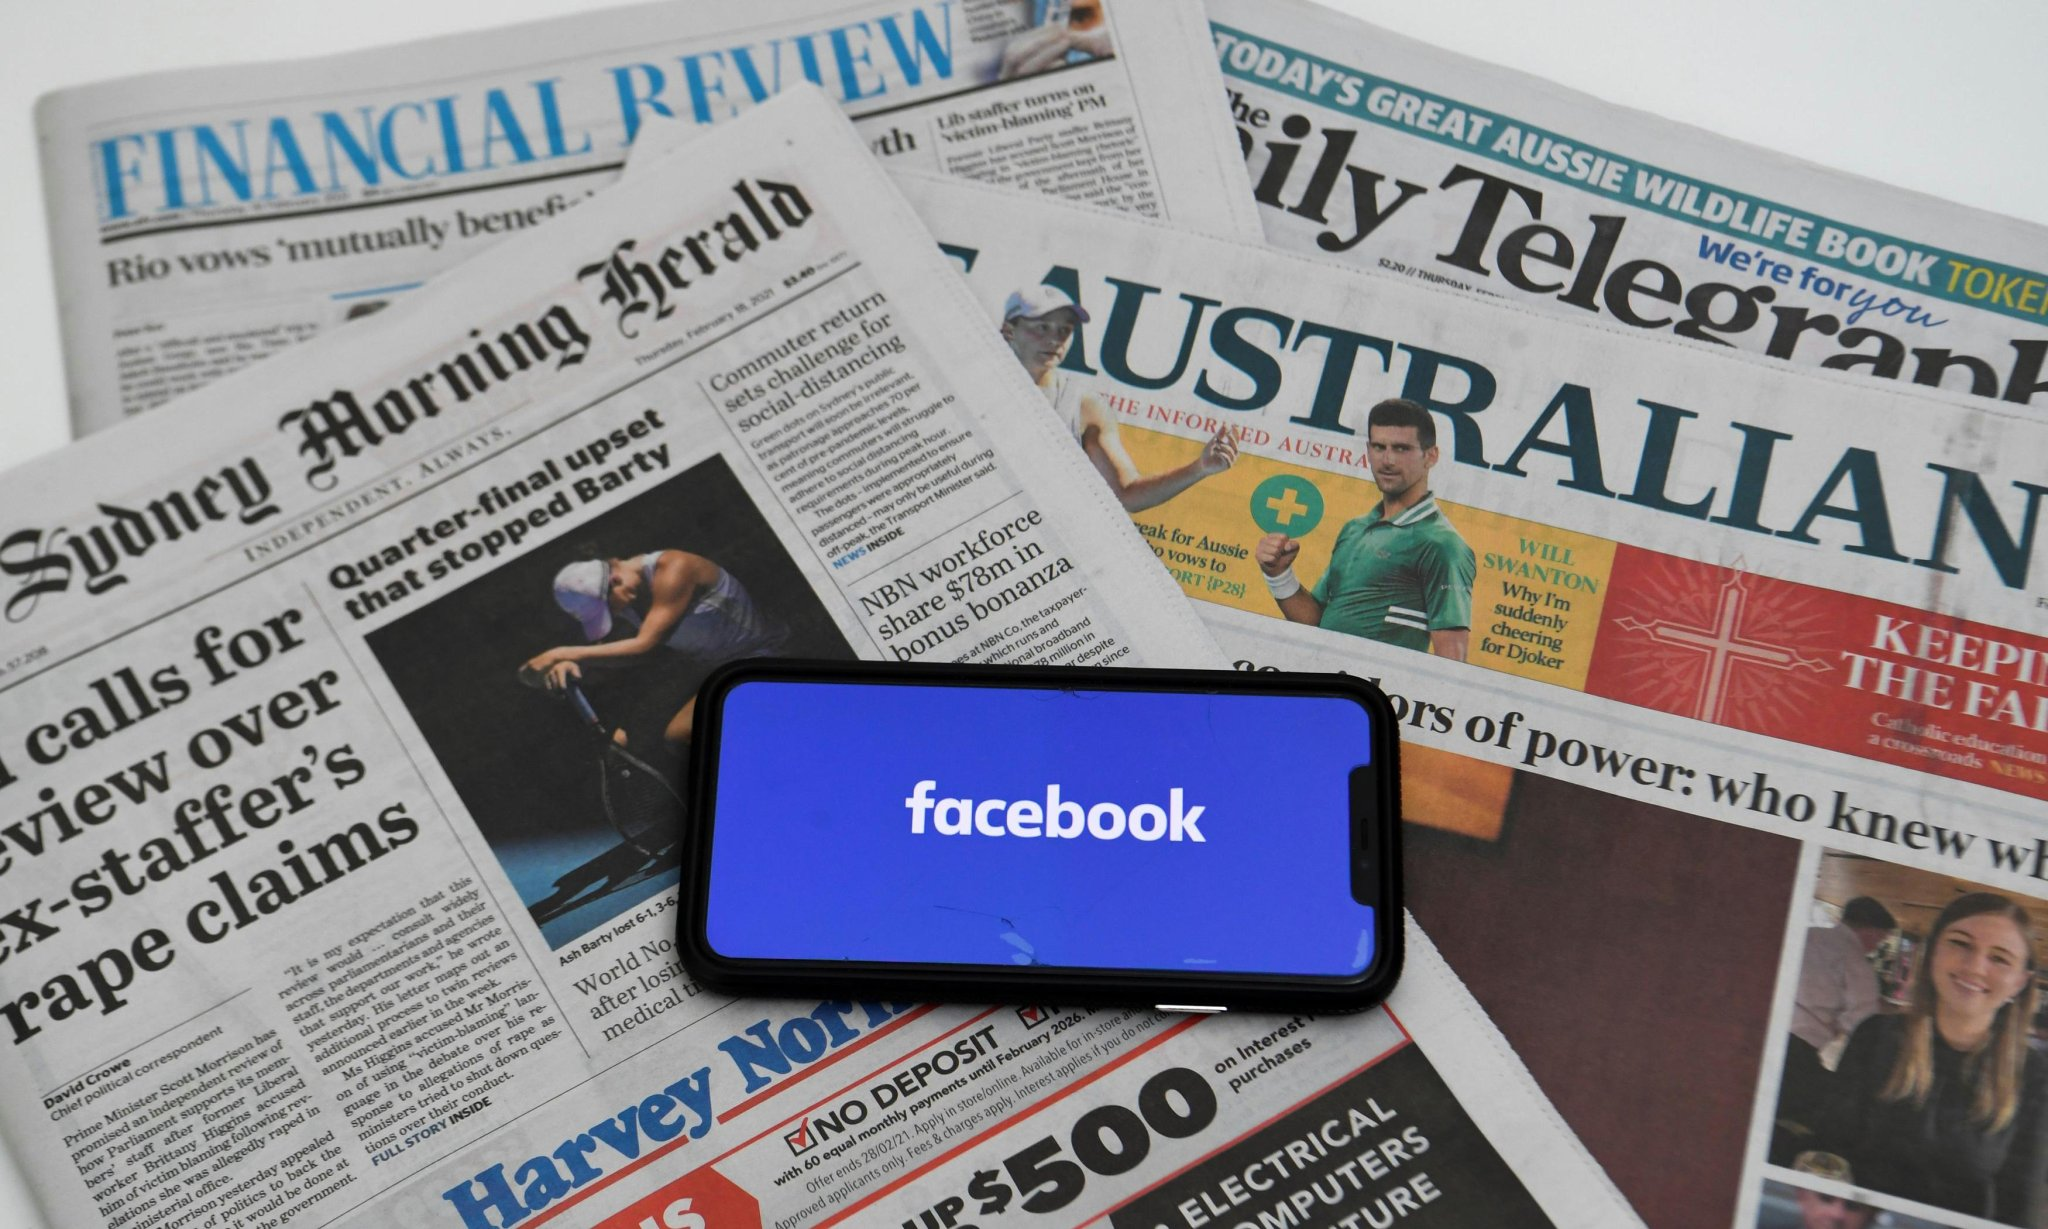 'Time to reactivate MySpace': the day Australia woke up to a Facebook news blackout